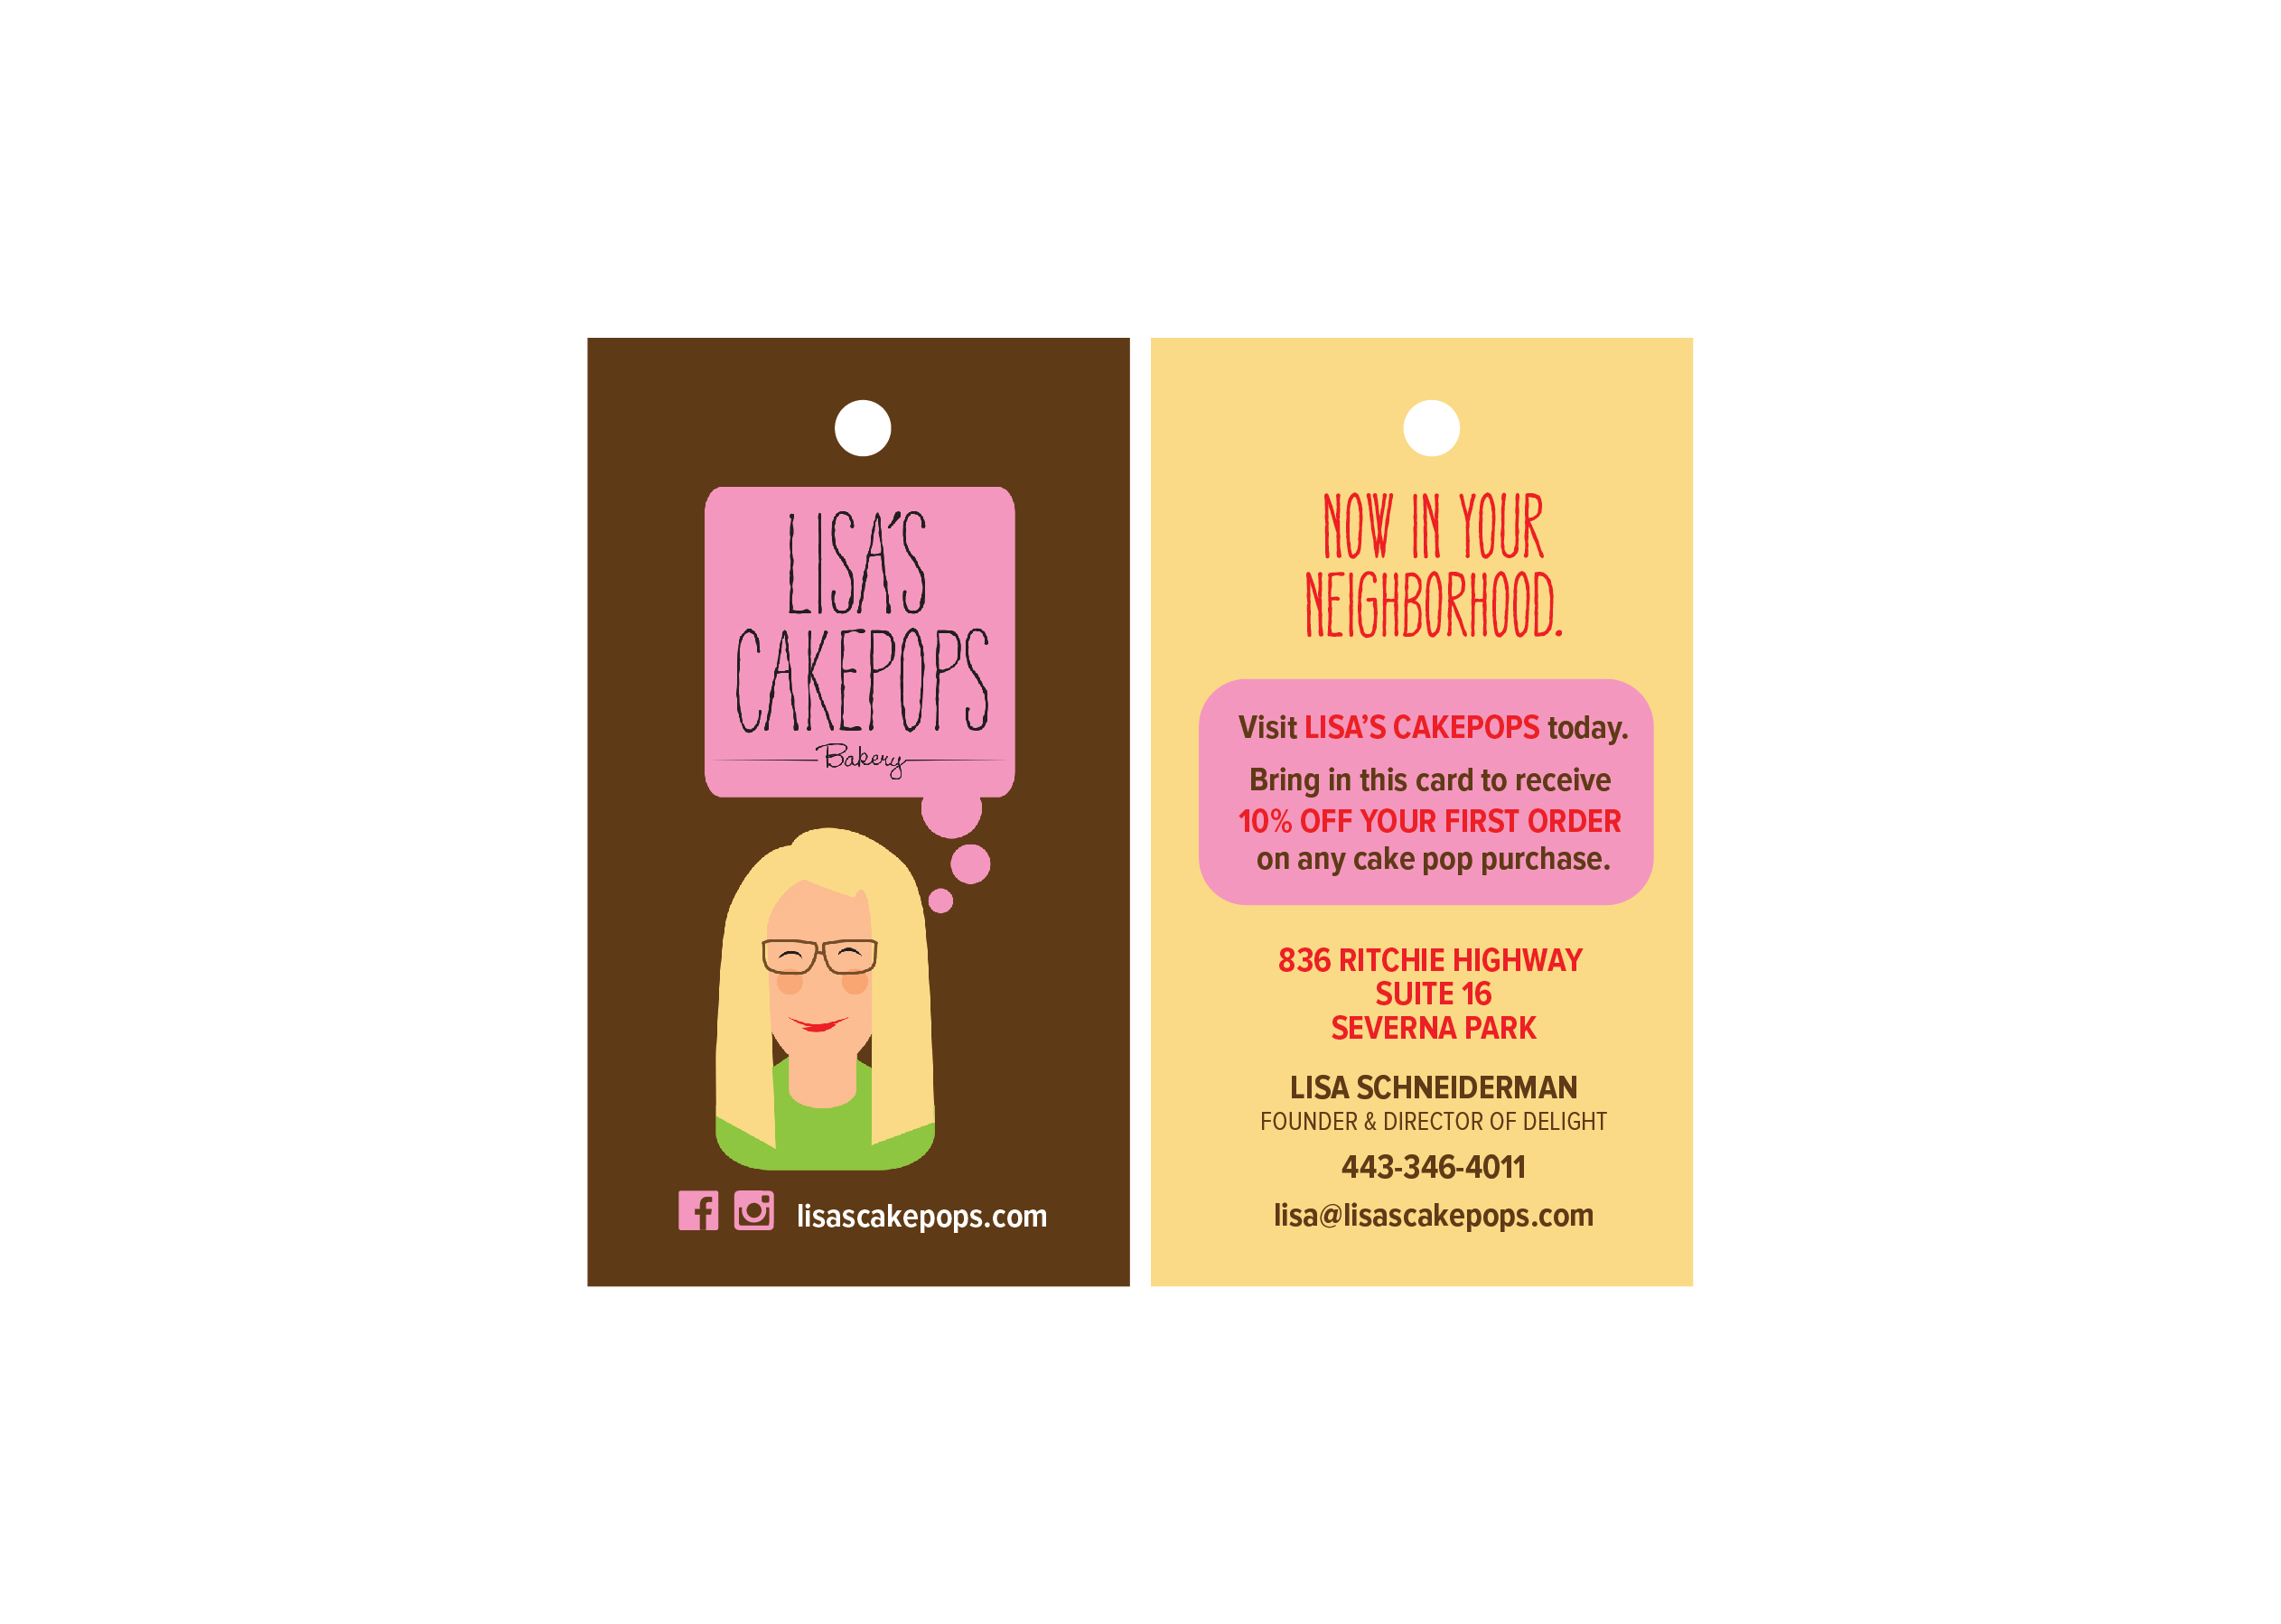 lisas-cakepops-product-tag